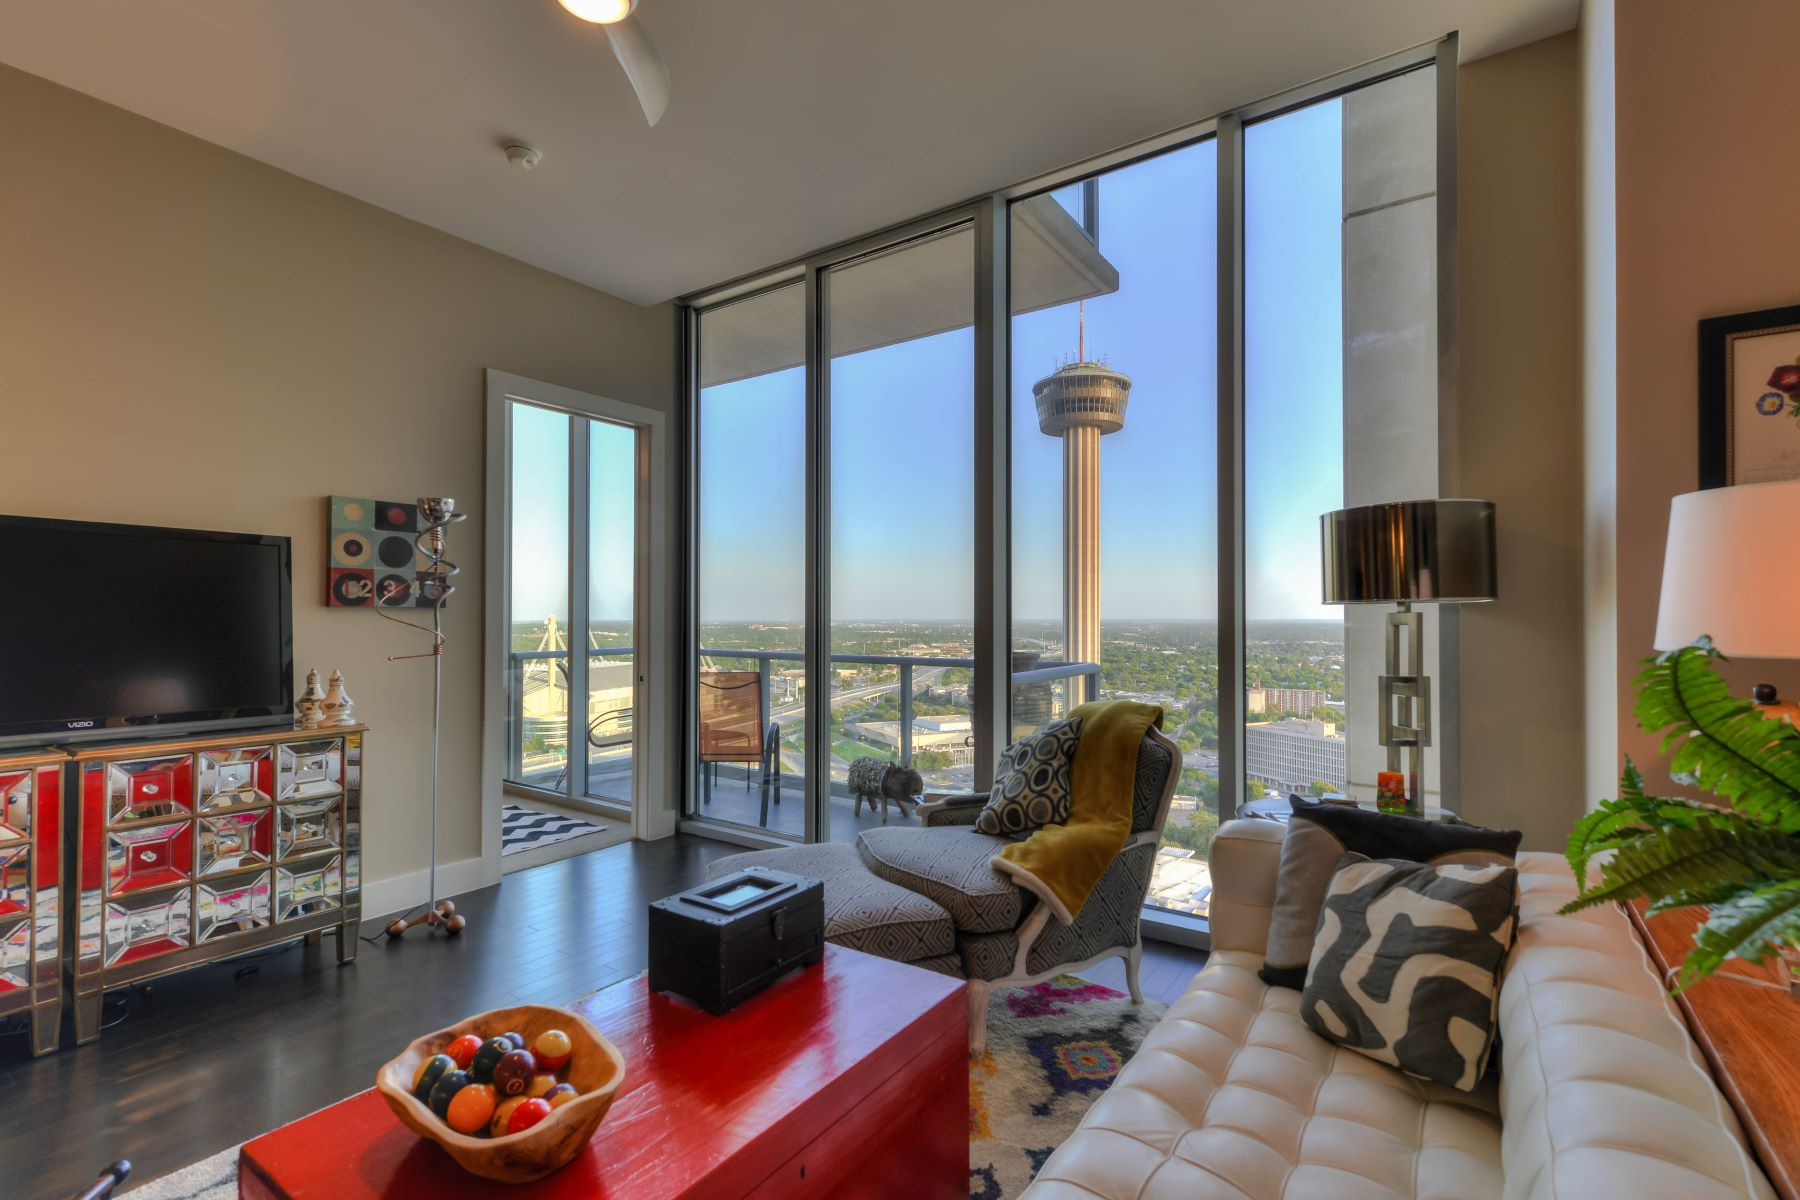 Condominio por un Alquiler en Luxury Downtown Living At Alteza 610 E Market St 2809 San Antonio, Texas 78205 Estados Unidos